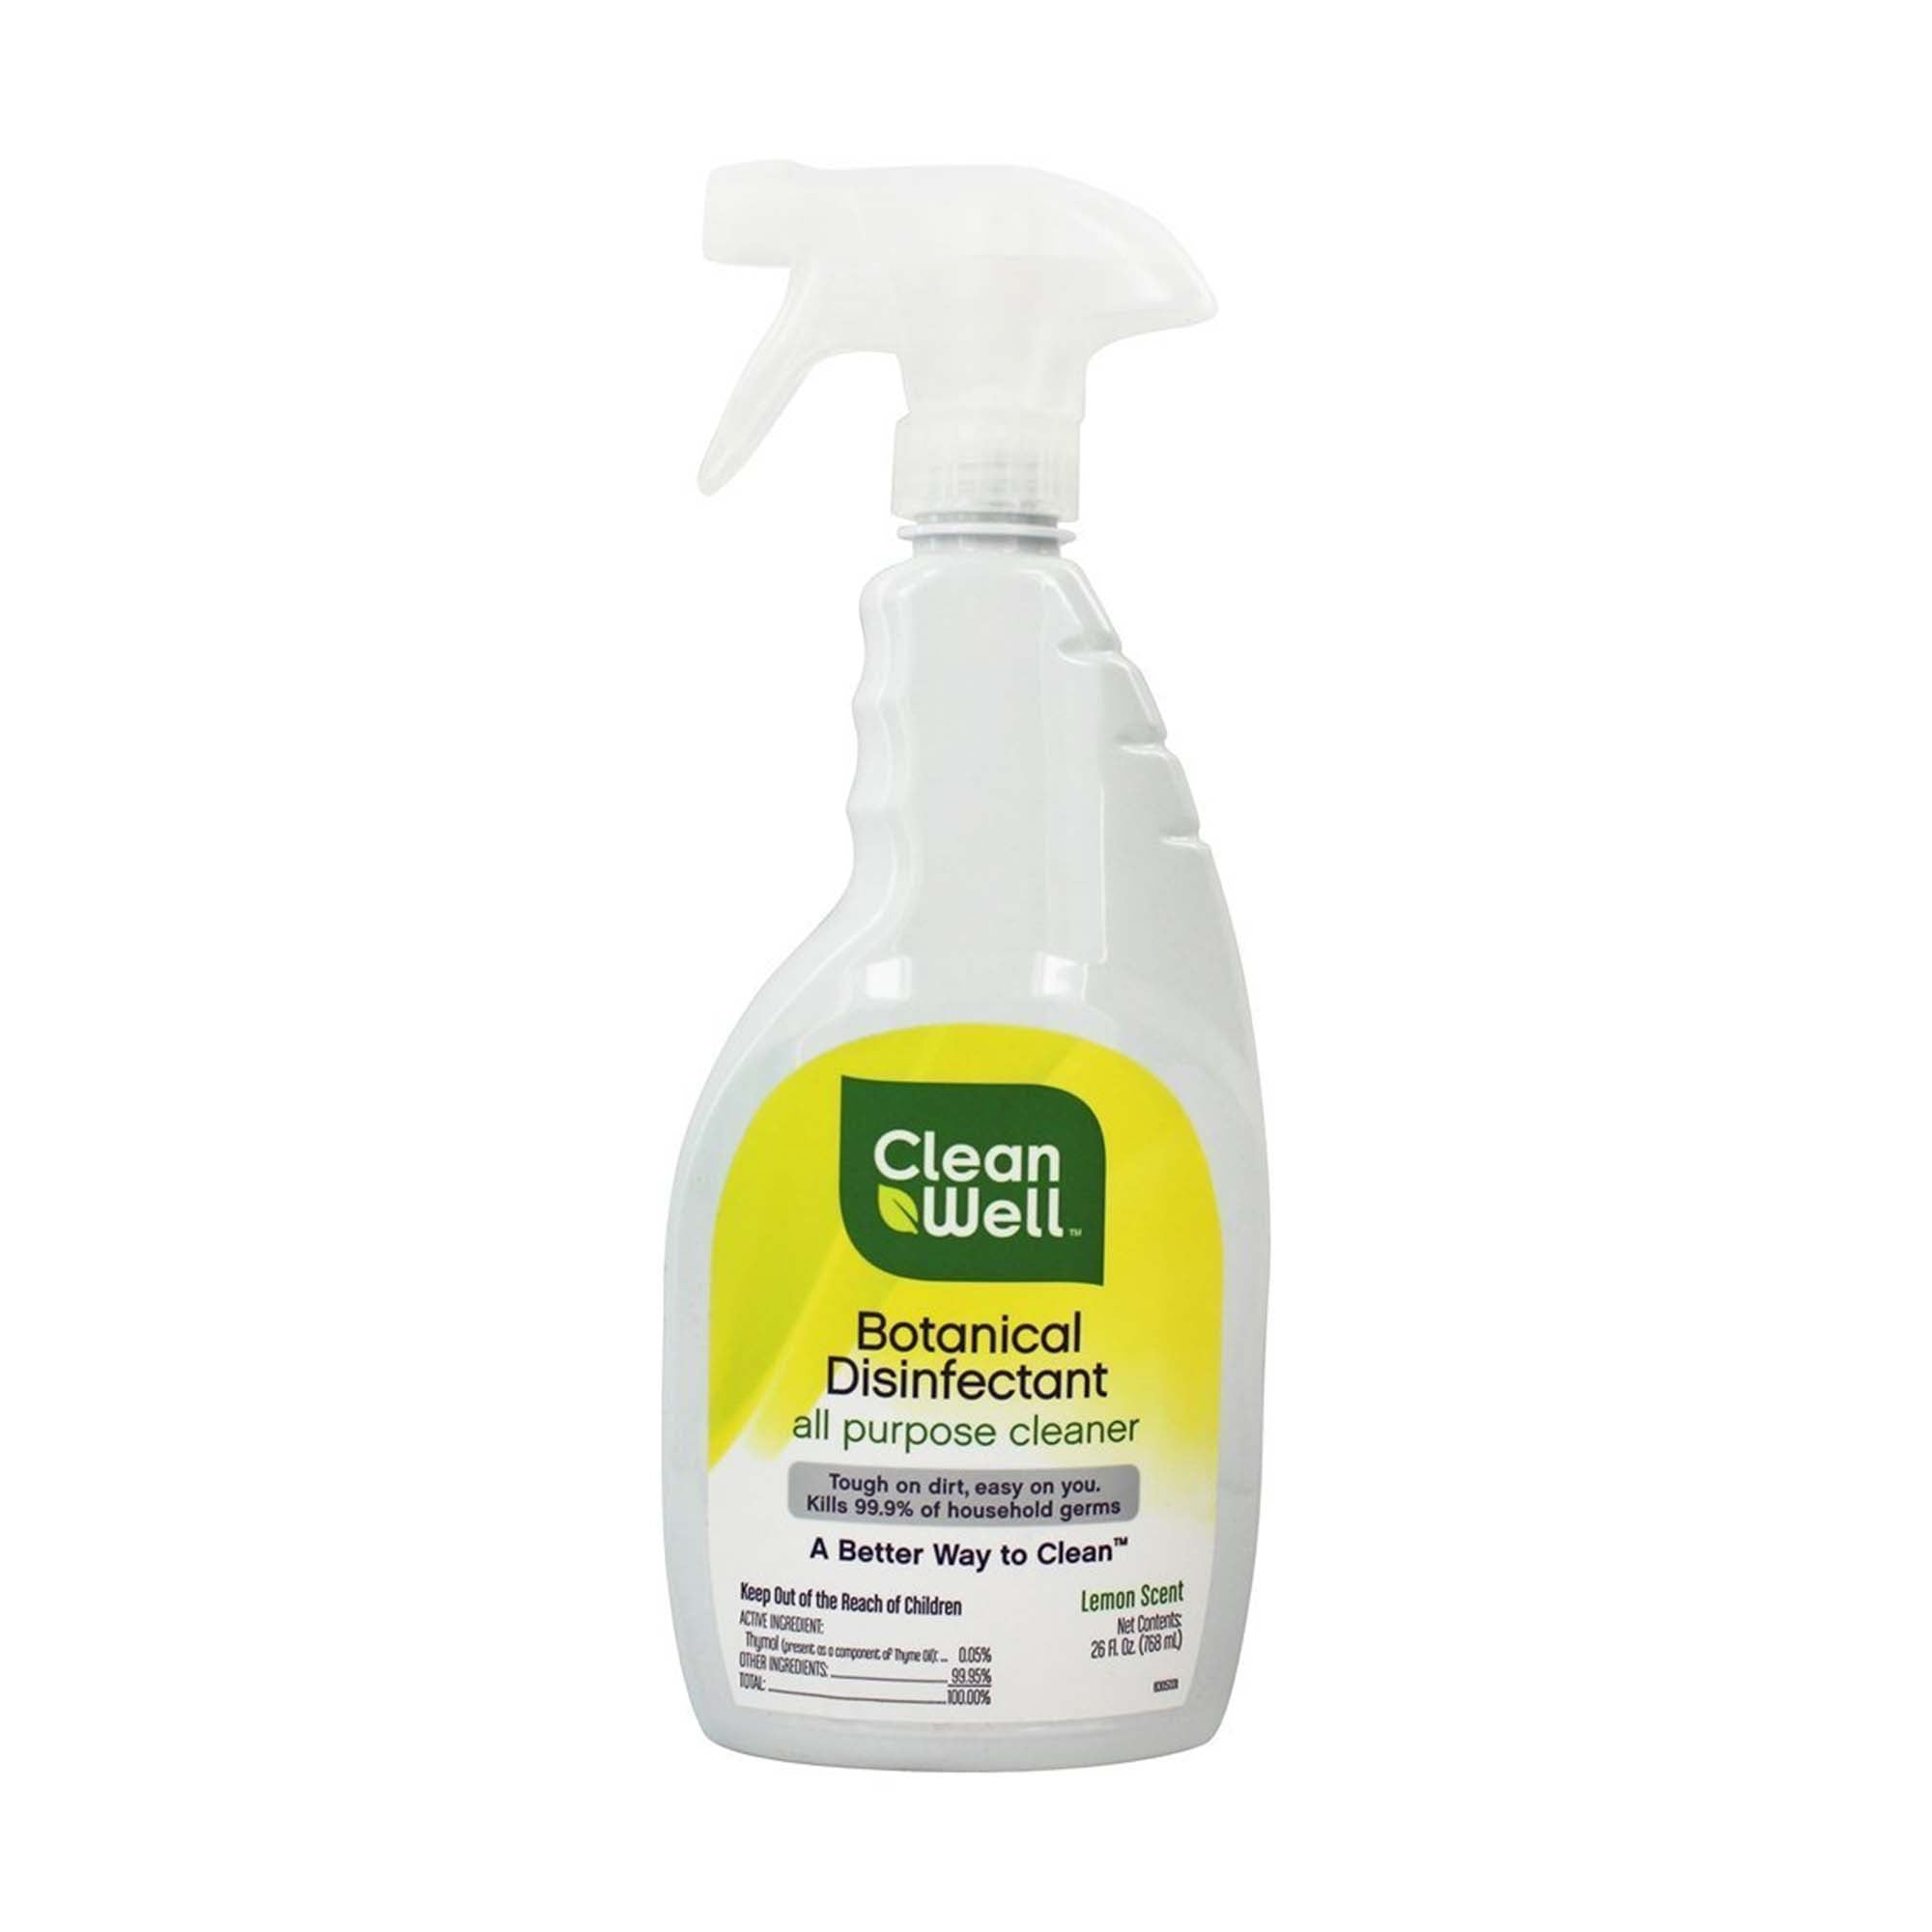 EPA approved this Covid-19 botanical disinfectant that kills 99.9% of germs. This is an all purpose cleaner and disinfectant which is tough on dirt, but no you. 26 fl. oz and lemon scented.